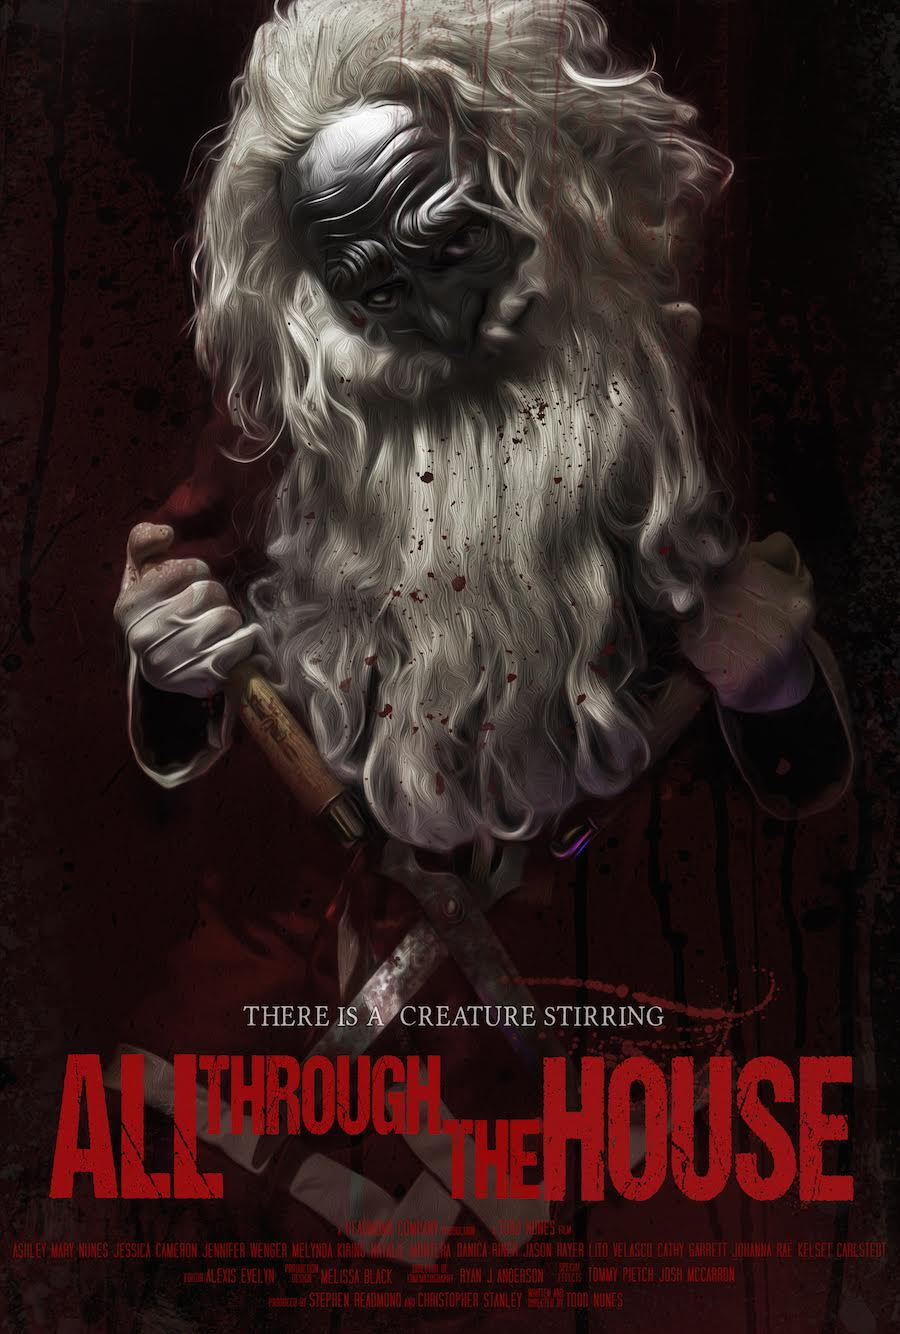 all through the house6 1 - Jessica Cameron Runs All Through the House; Exclusive Image Unveiled